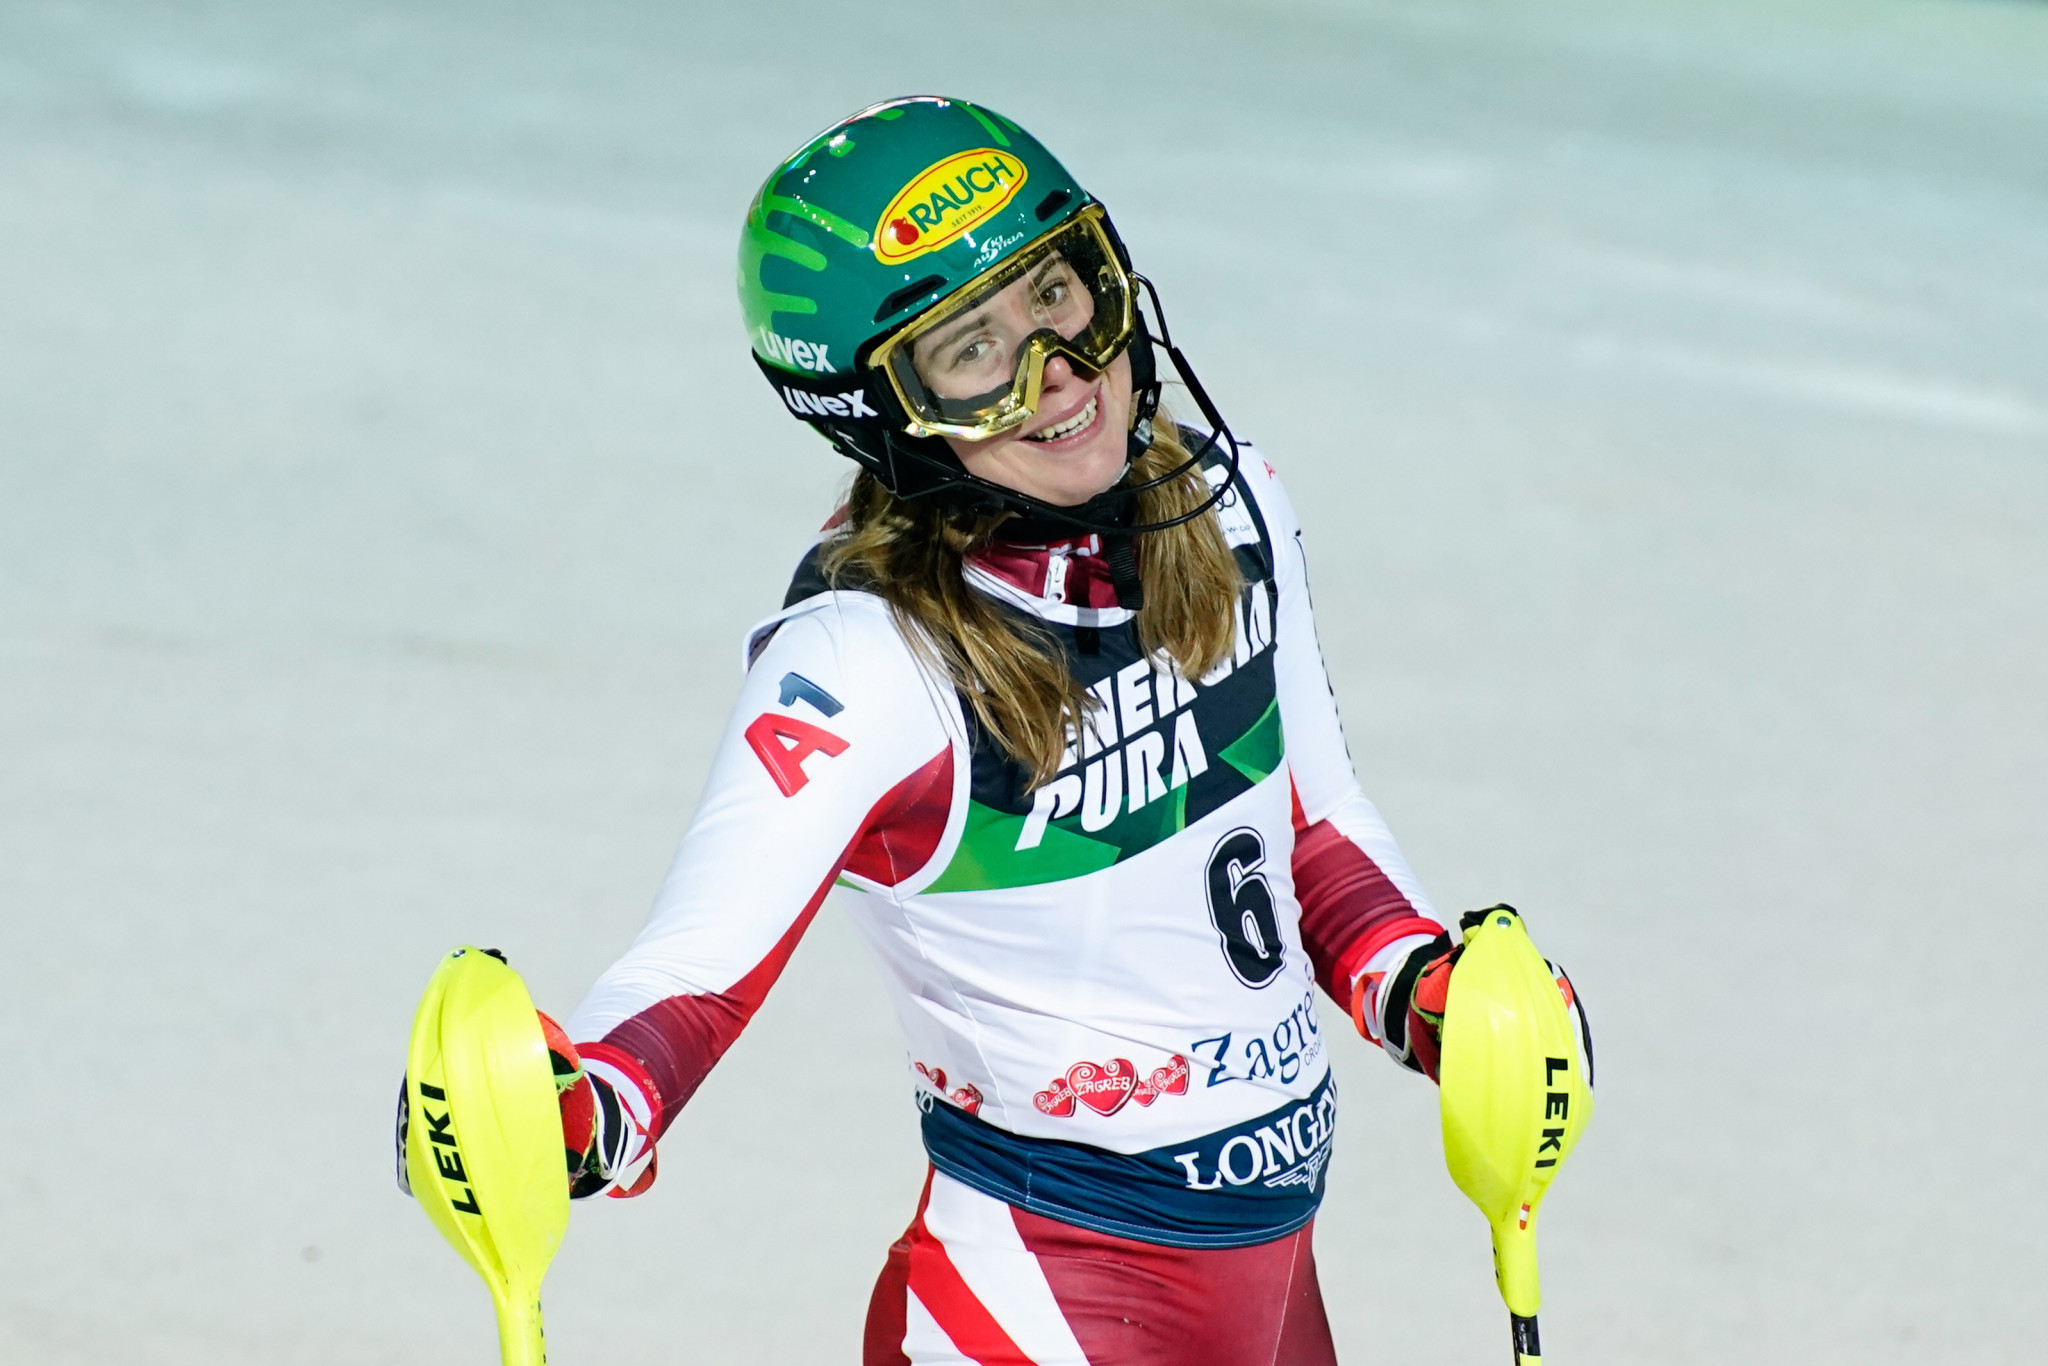 Katharina Liensberger is still searching for her first World Cup win in a consistent slalom season so far ©Getty Images